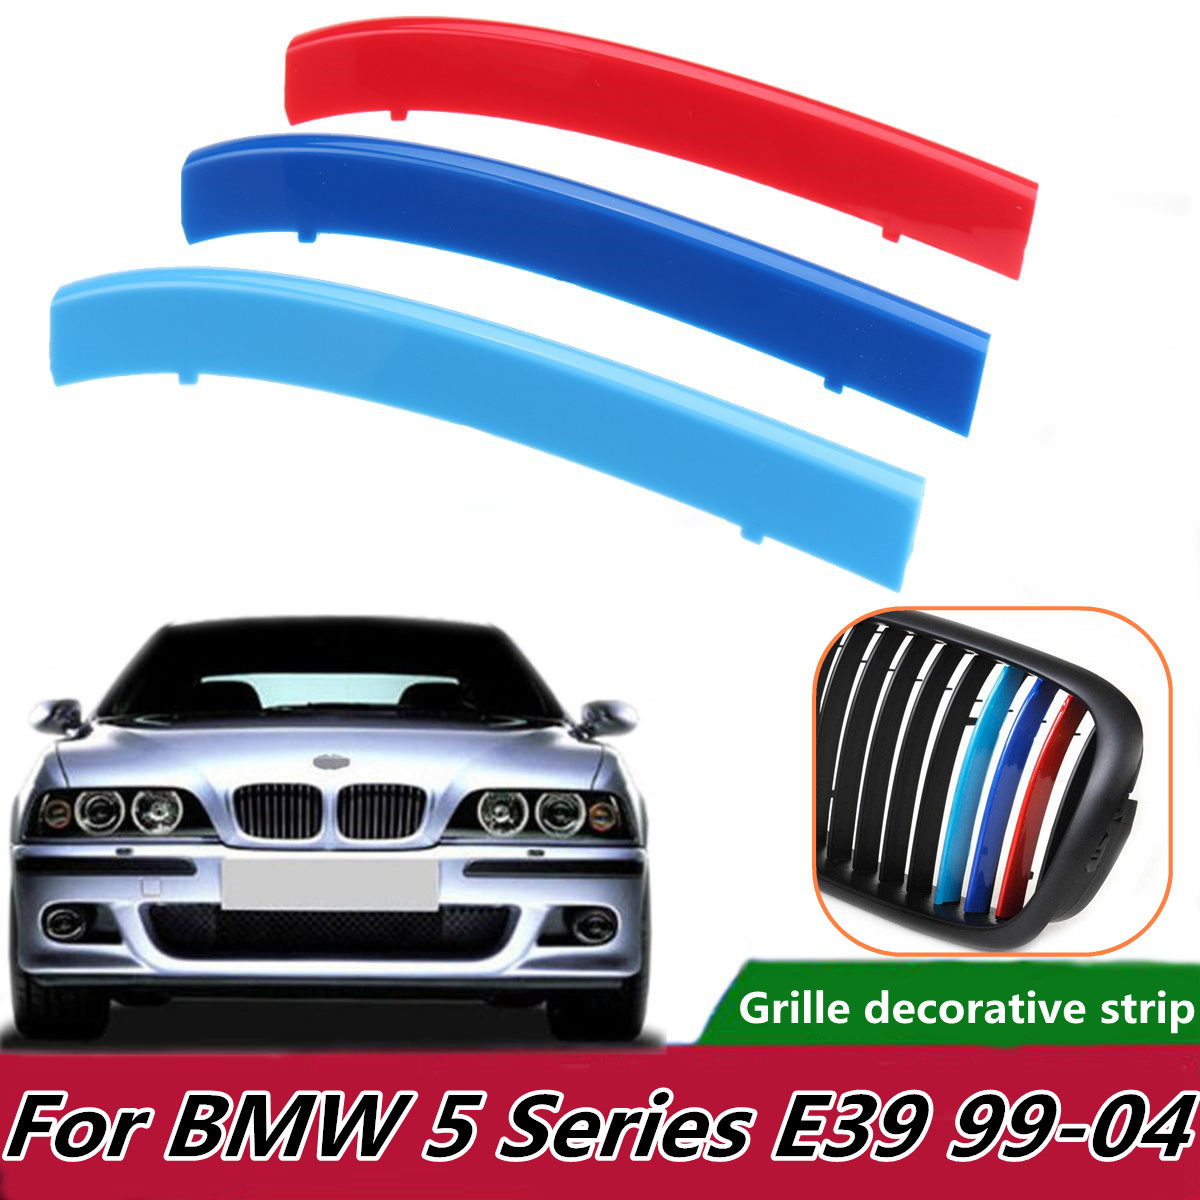 3pcs <font><b>Car</b></font> Front Grill Sport <font><b>Stripes</b></font> Motorsport Power Stickers for <font><b>BMW</b></font> E39 1999-2004 Grille Trim Fasten Tri-Color Strips Covers image